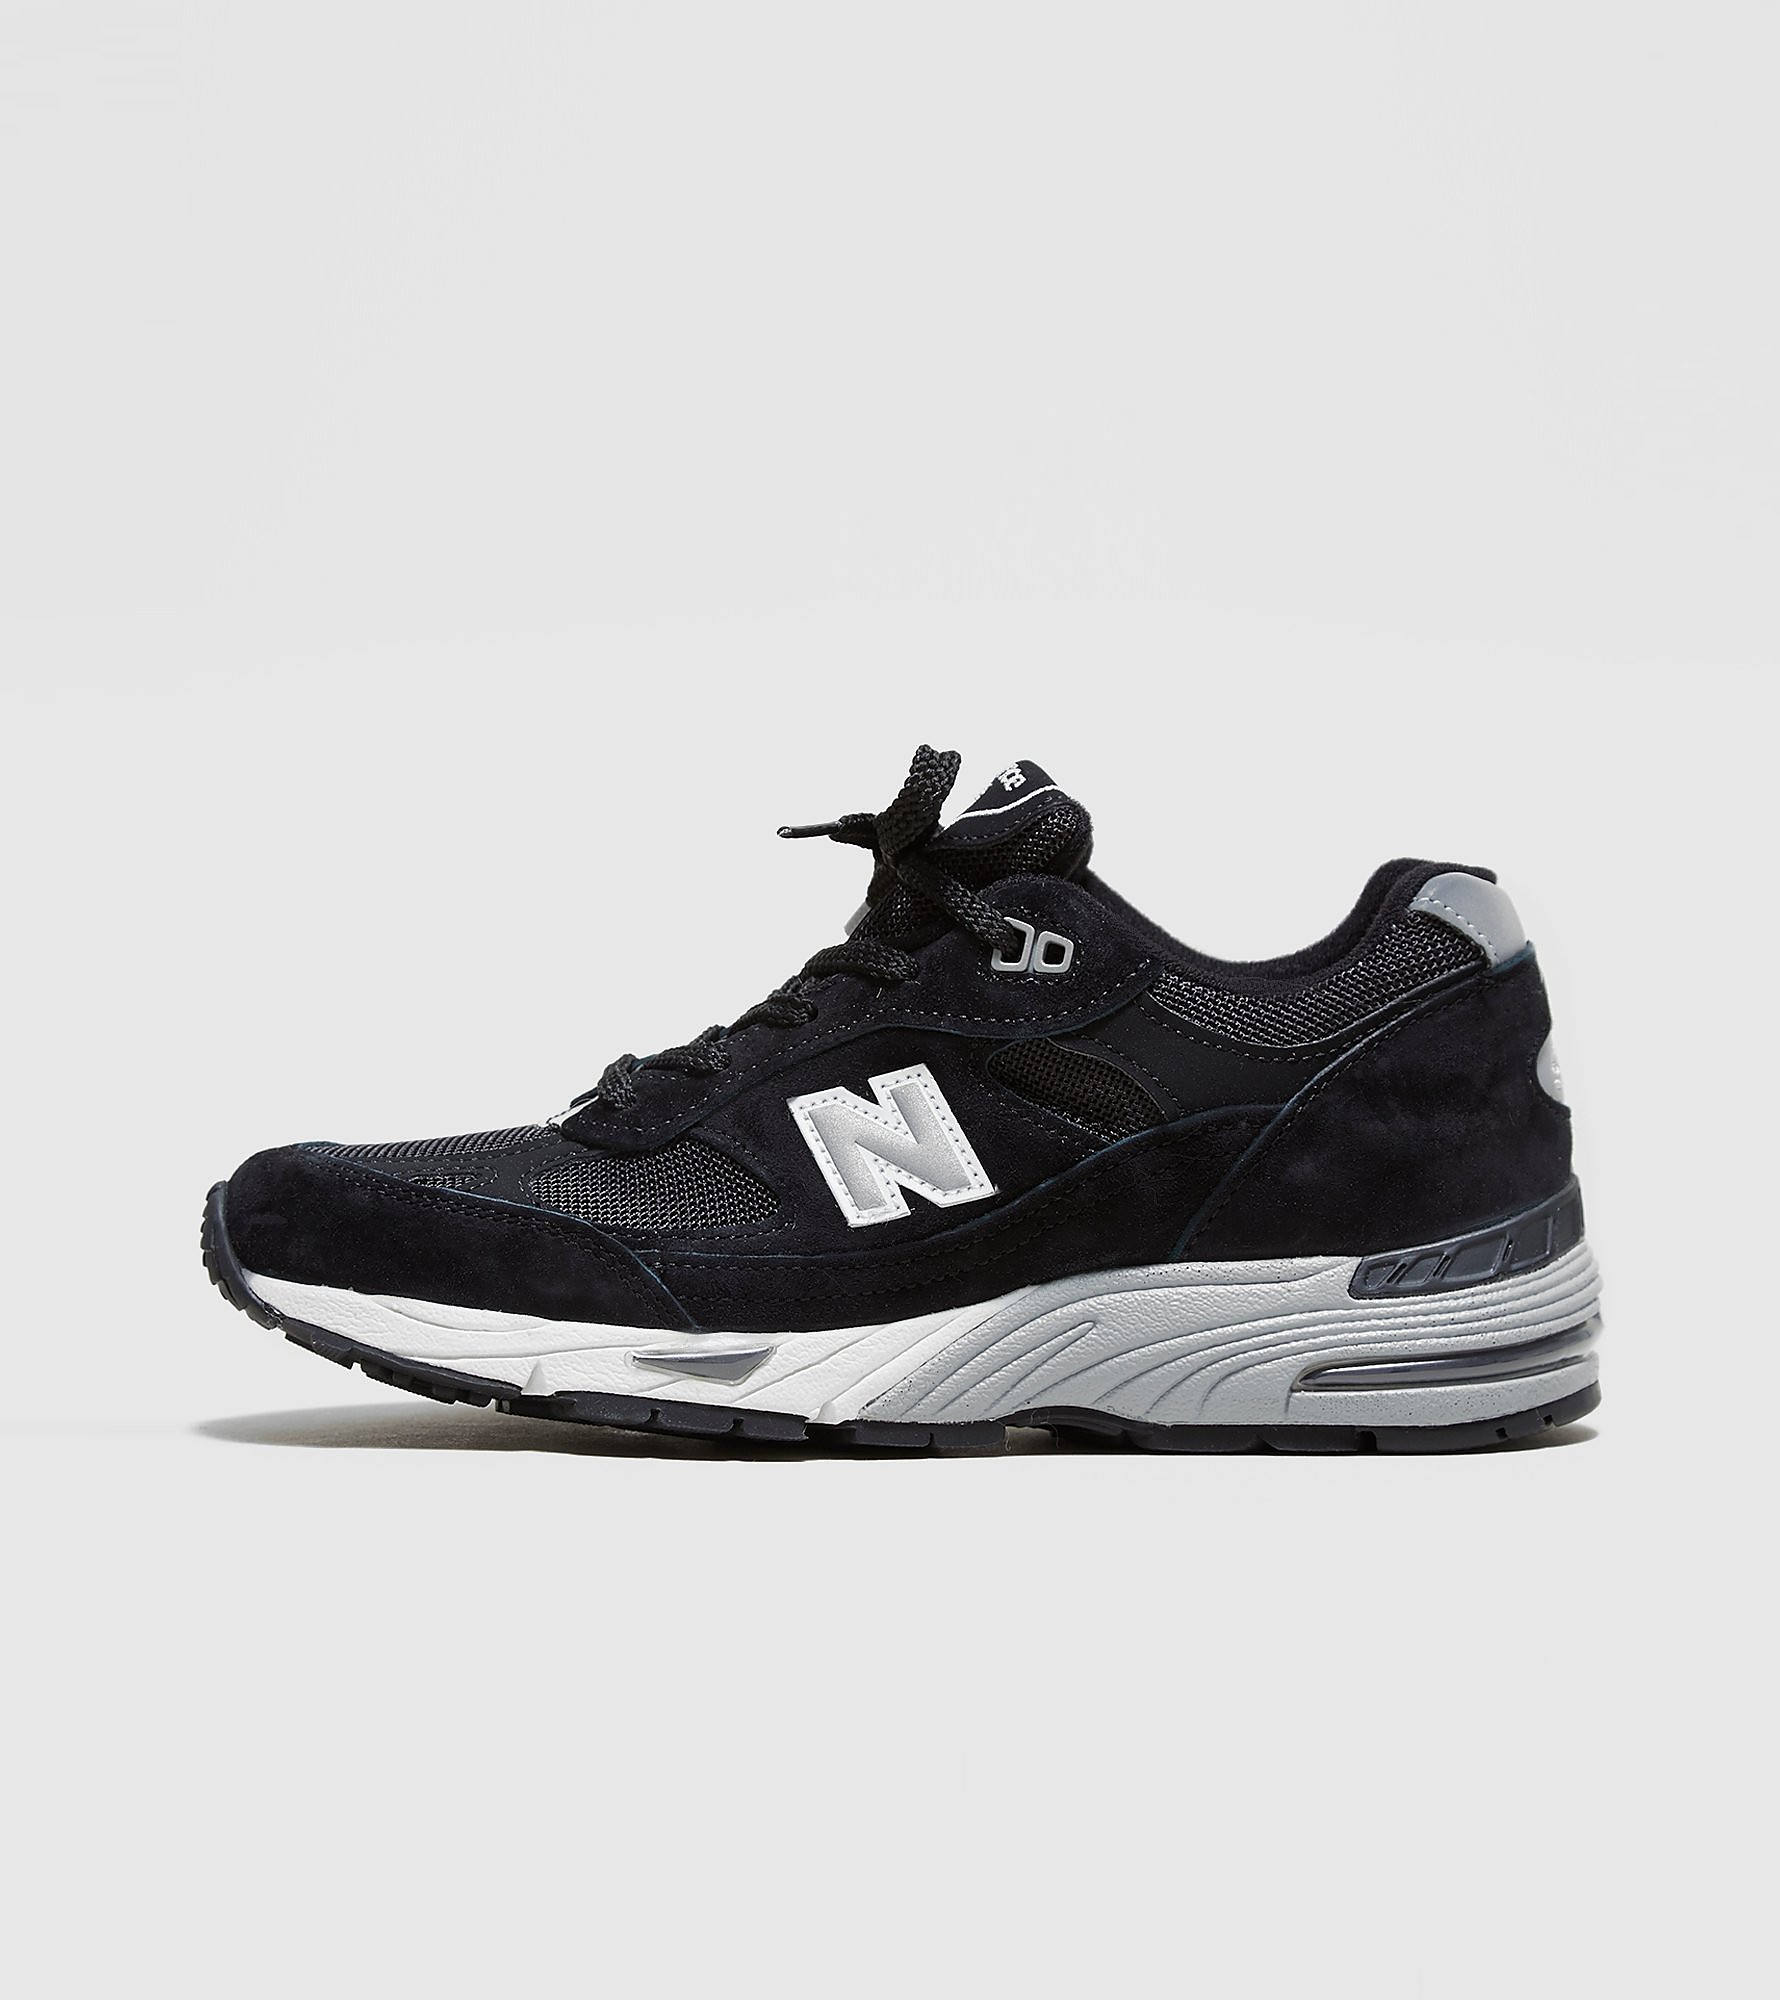 New Balance 991 'Made In England' Women's